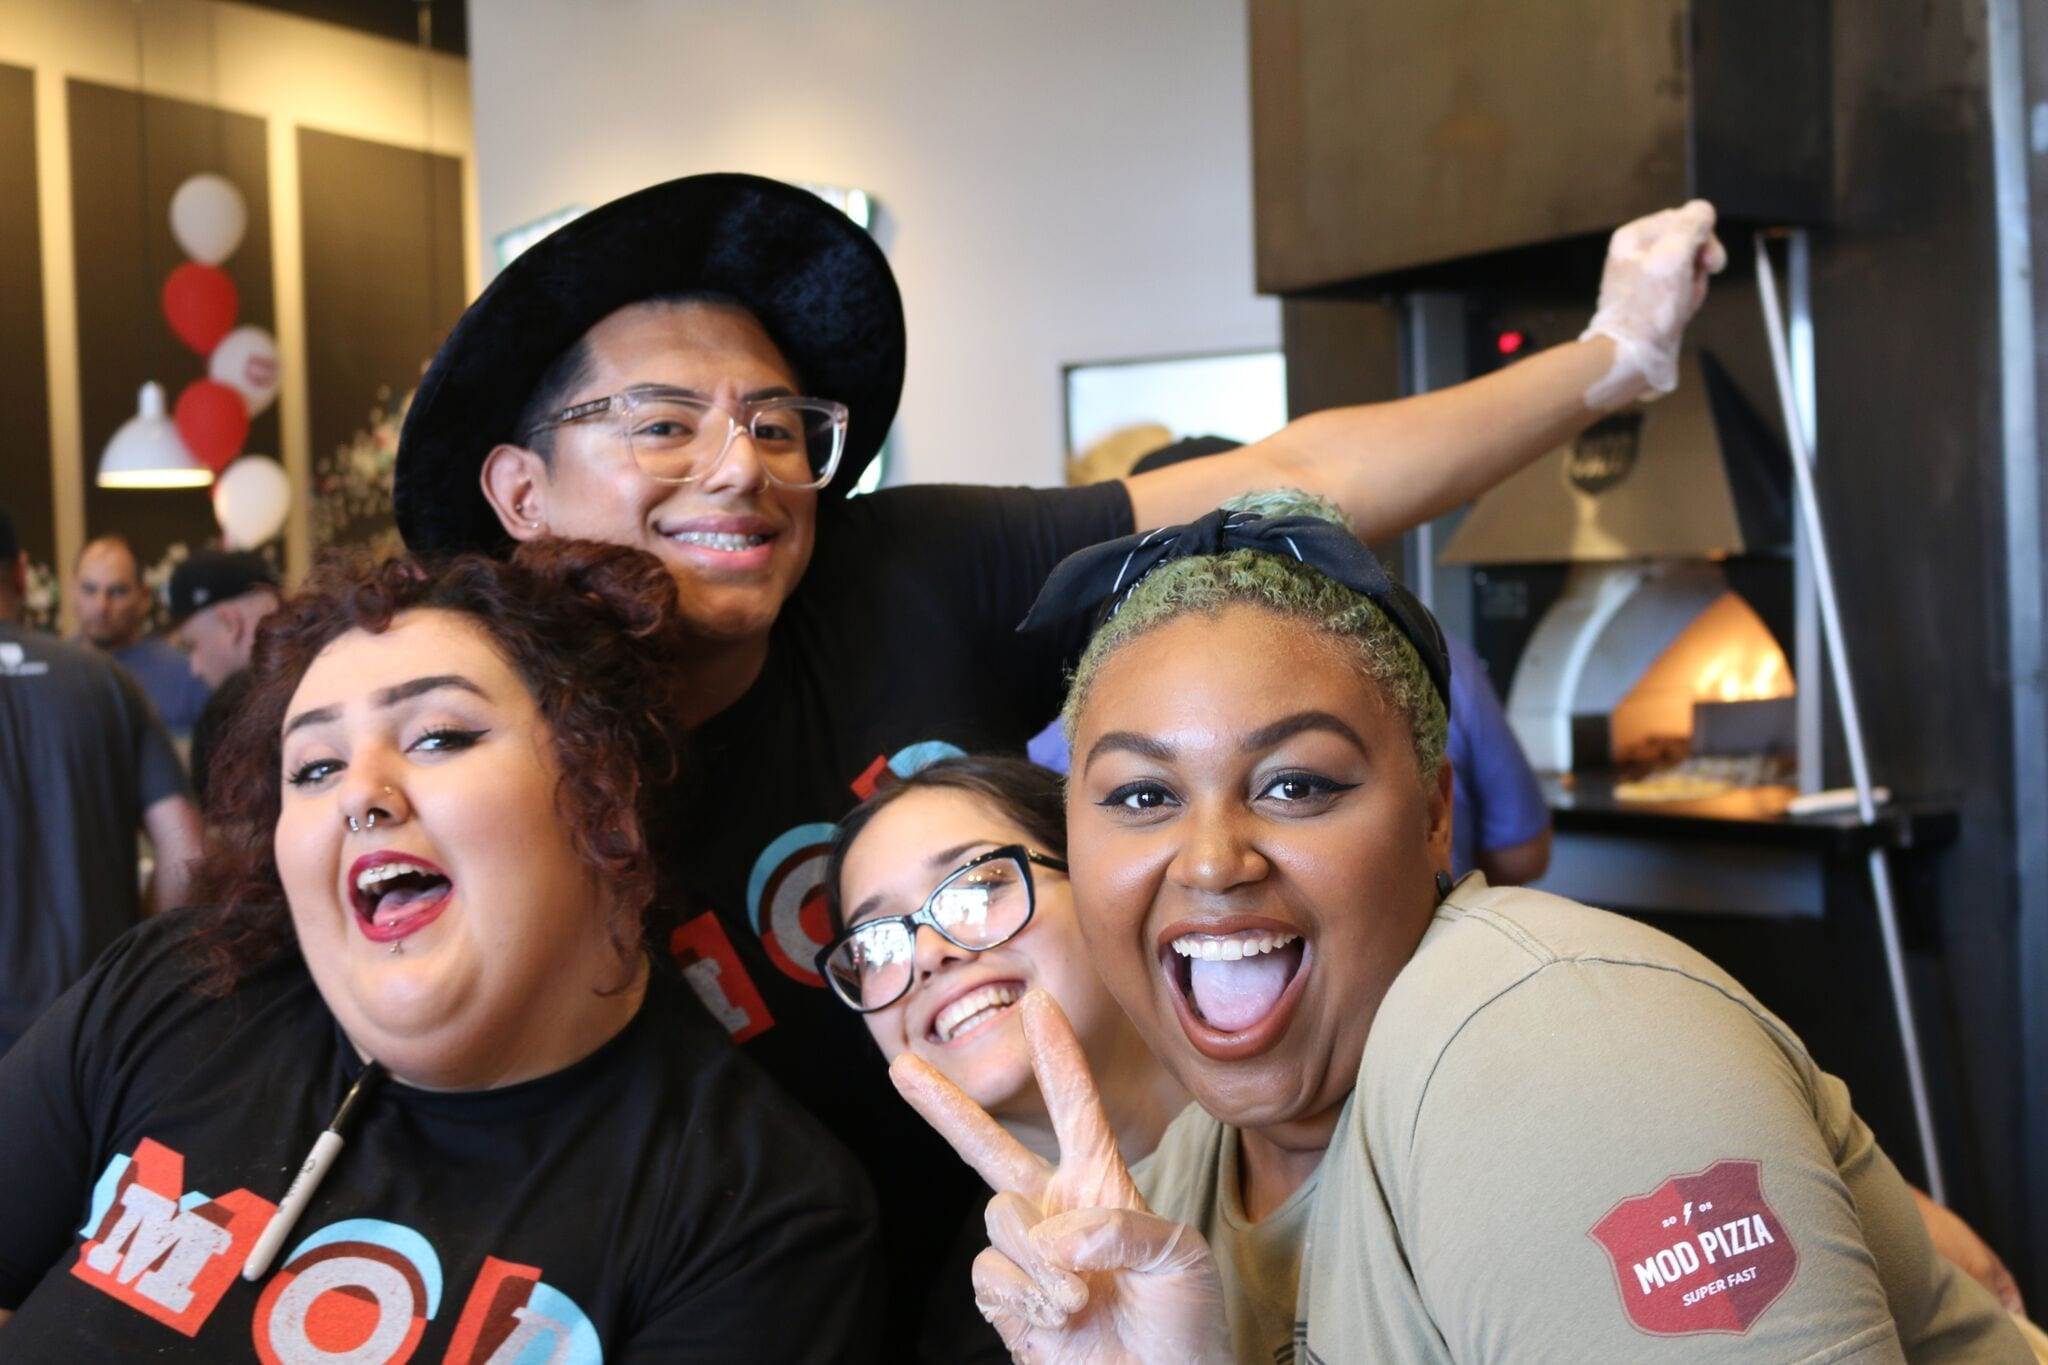 MOD Pizza employees smiling during a Talent Rewire event